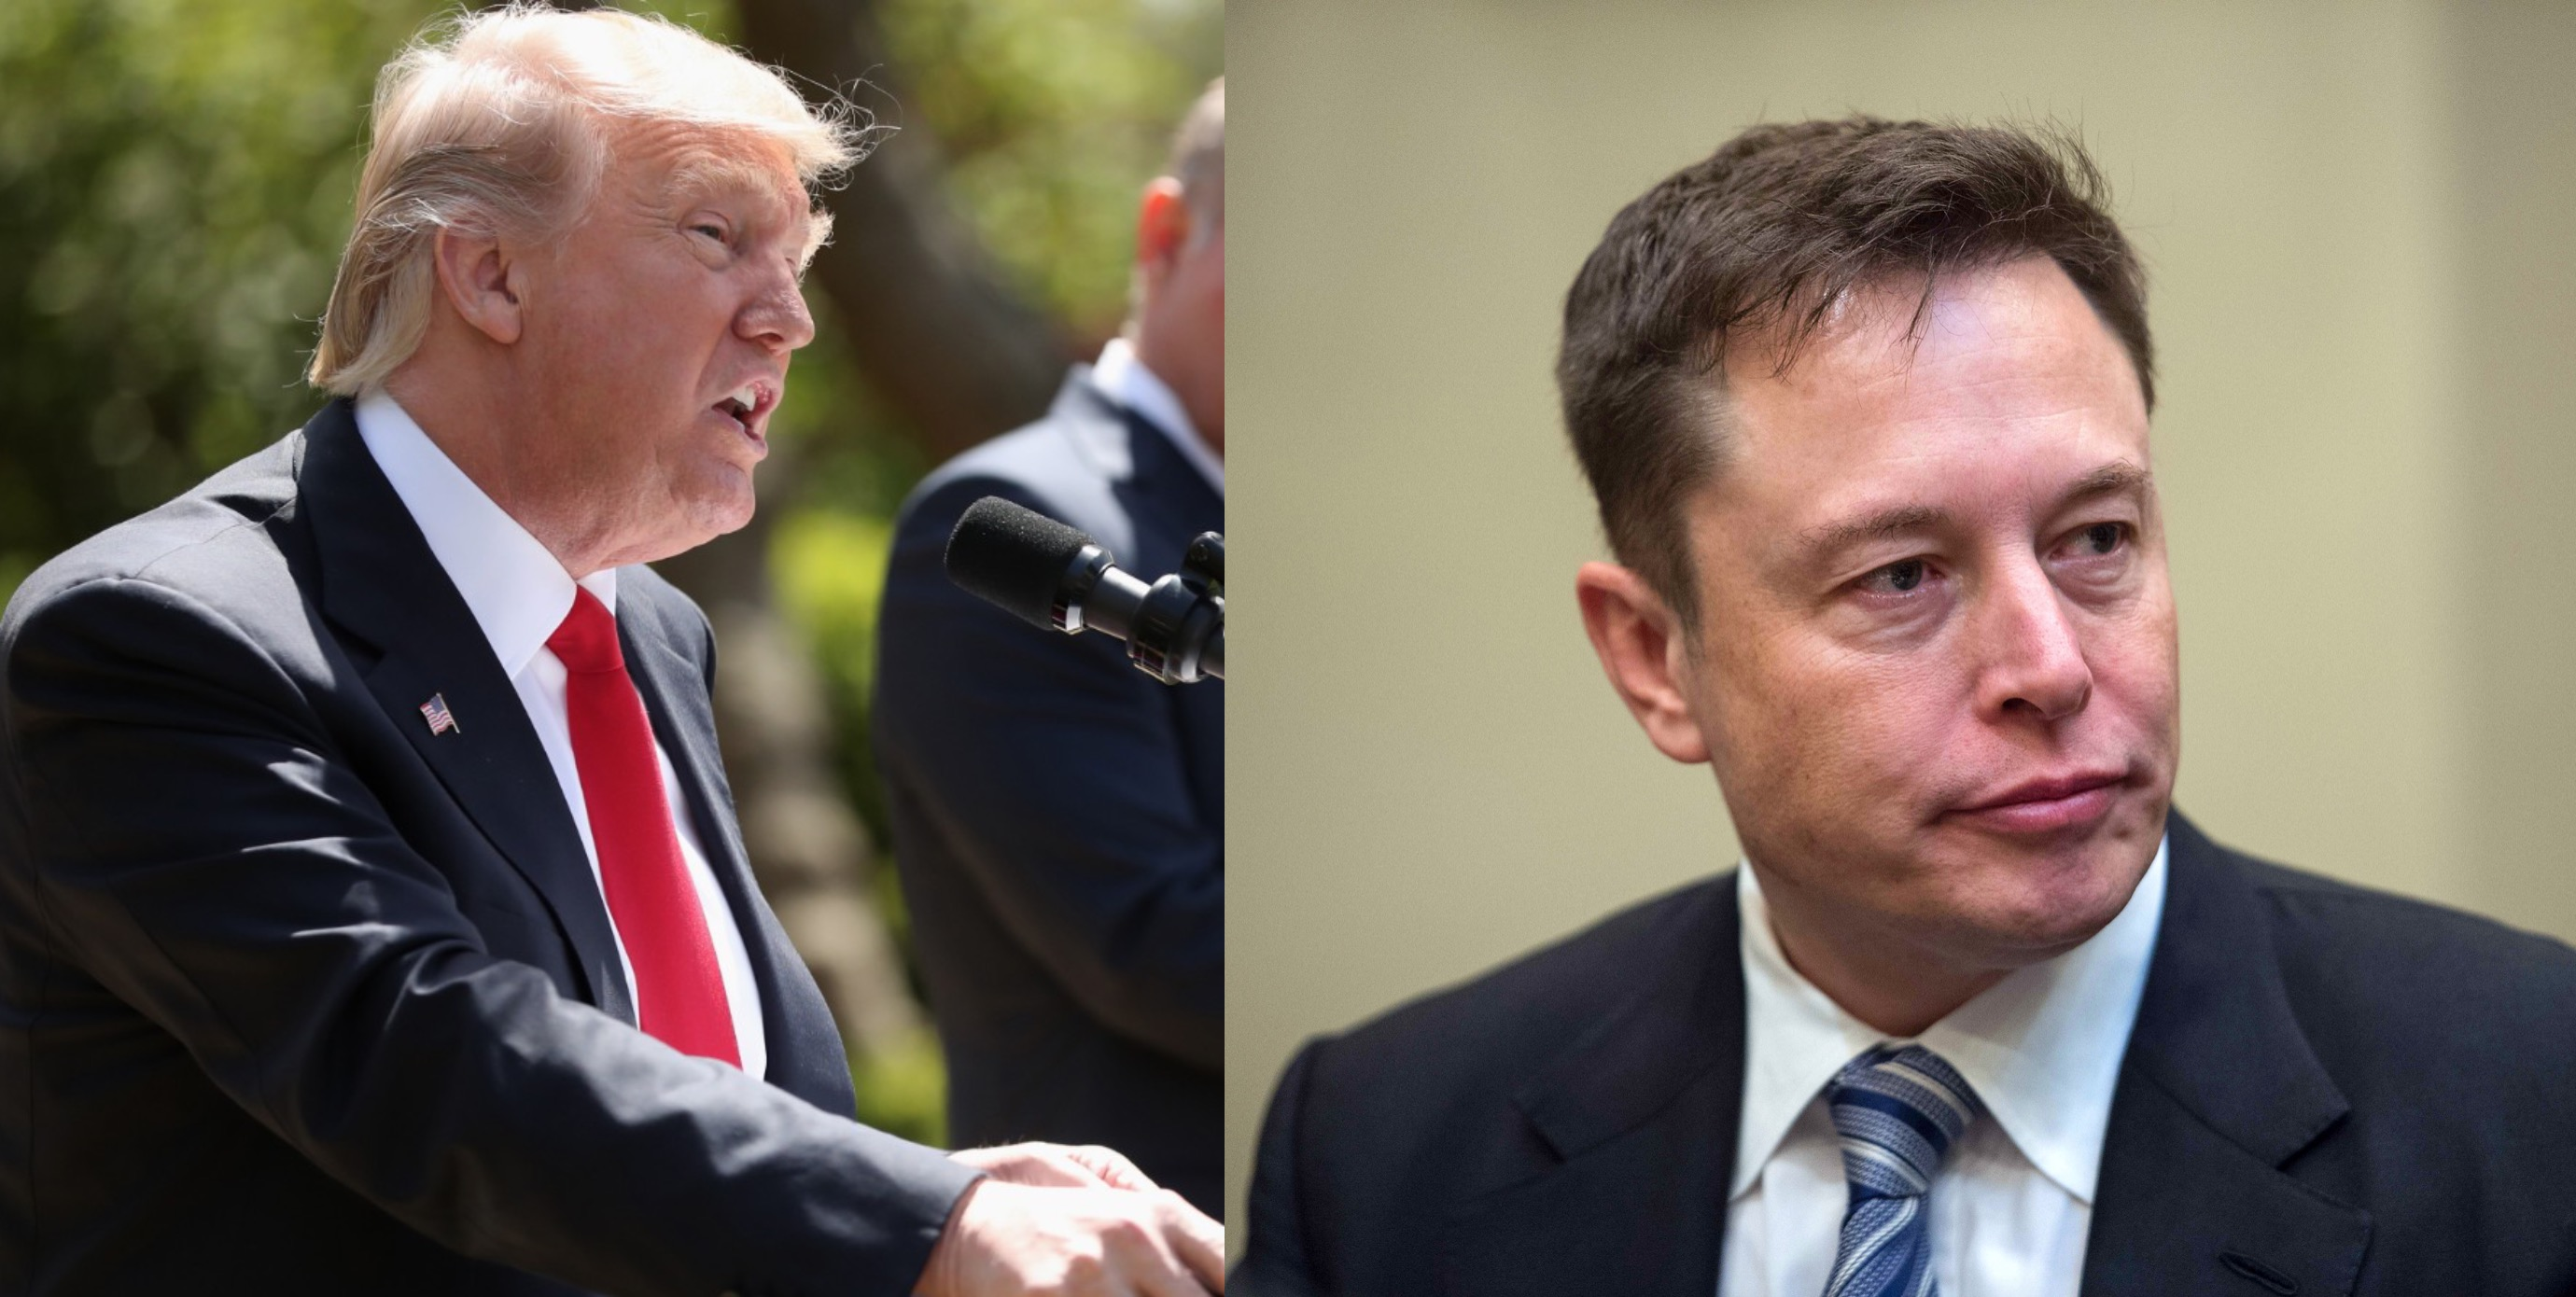 Elon Musk led the way, now Trump's council is completely wiped out